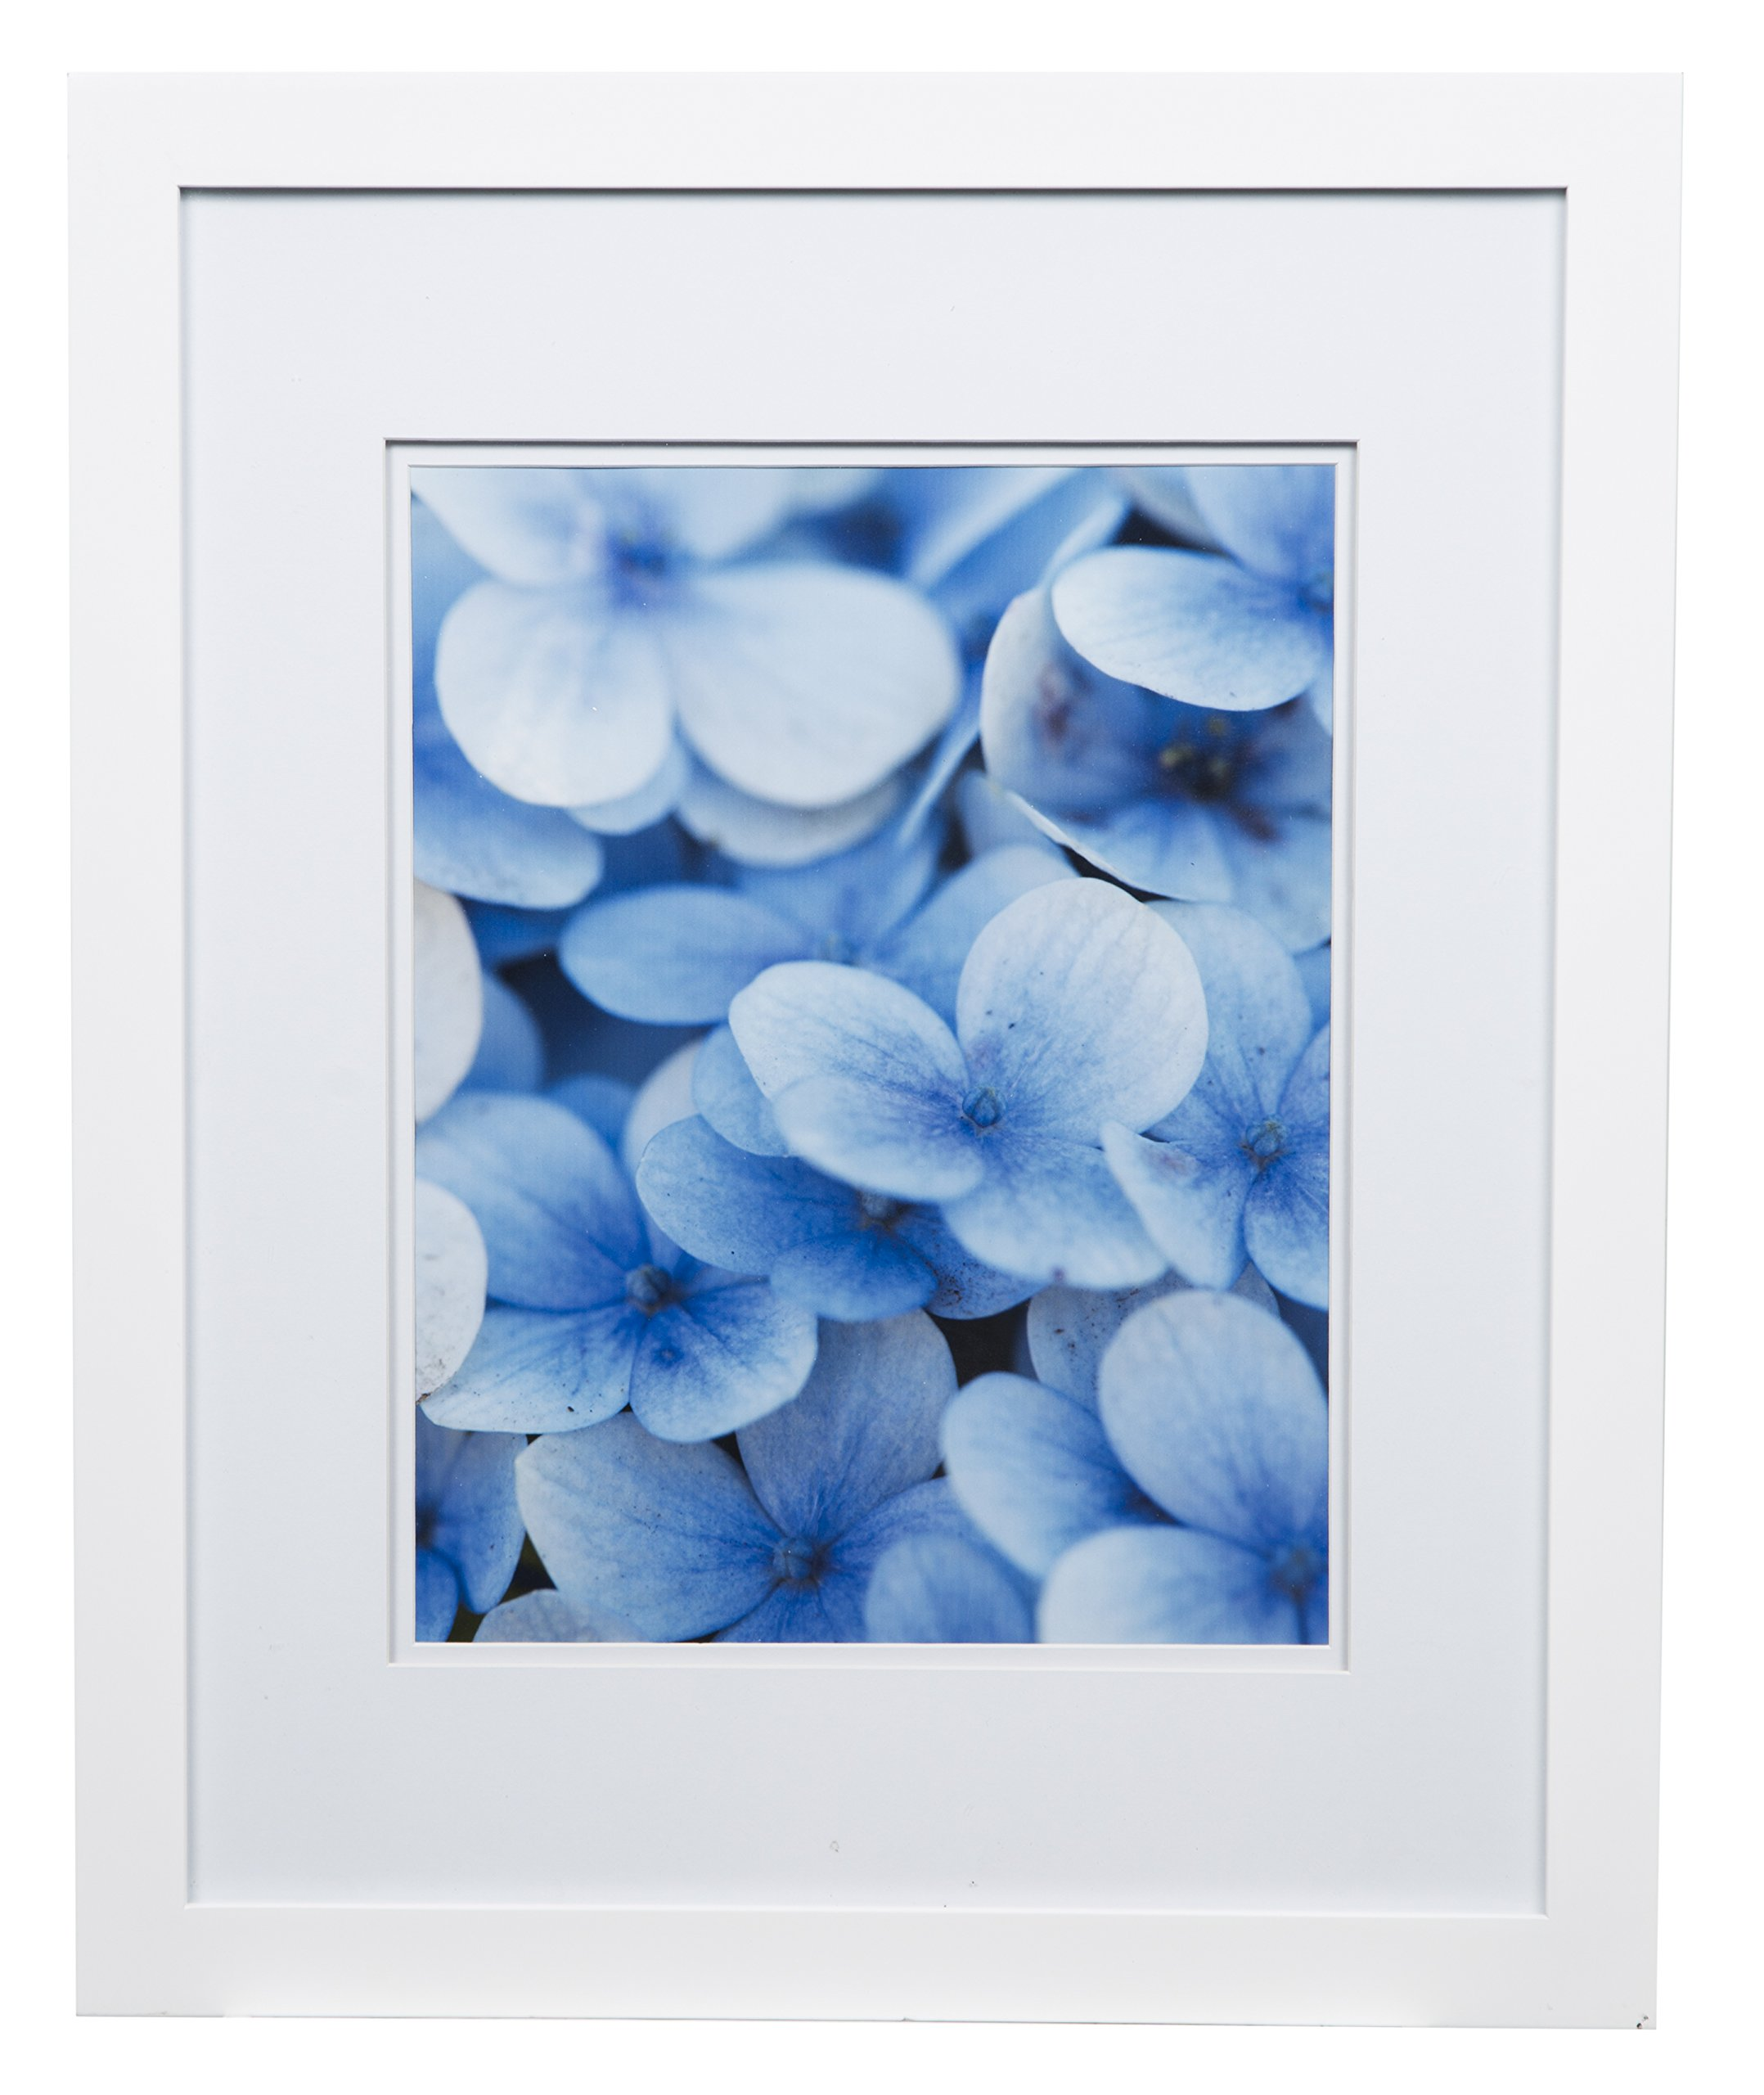 Gallery Solutions Flat Wall Picture Photo 16X20 White Double Frame, MATTED to 11X14, 16'' x 20'',